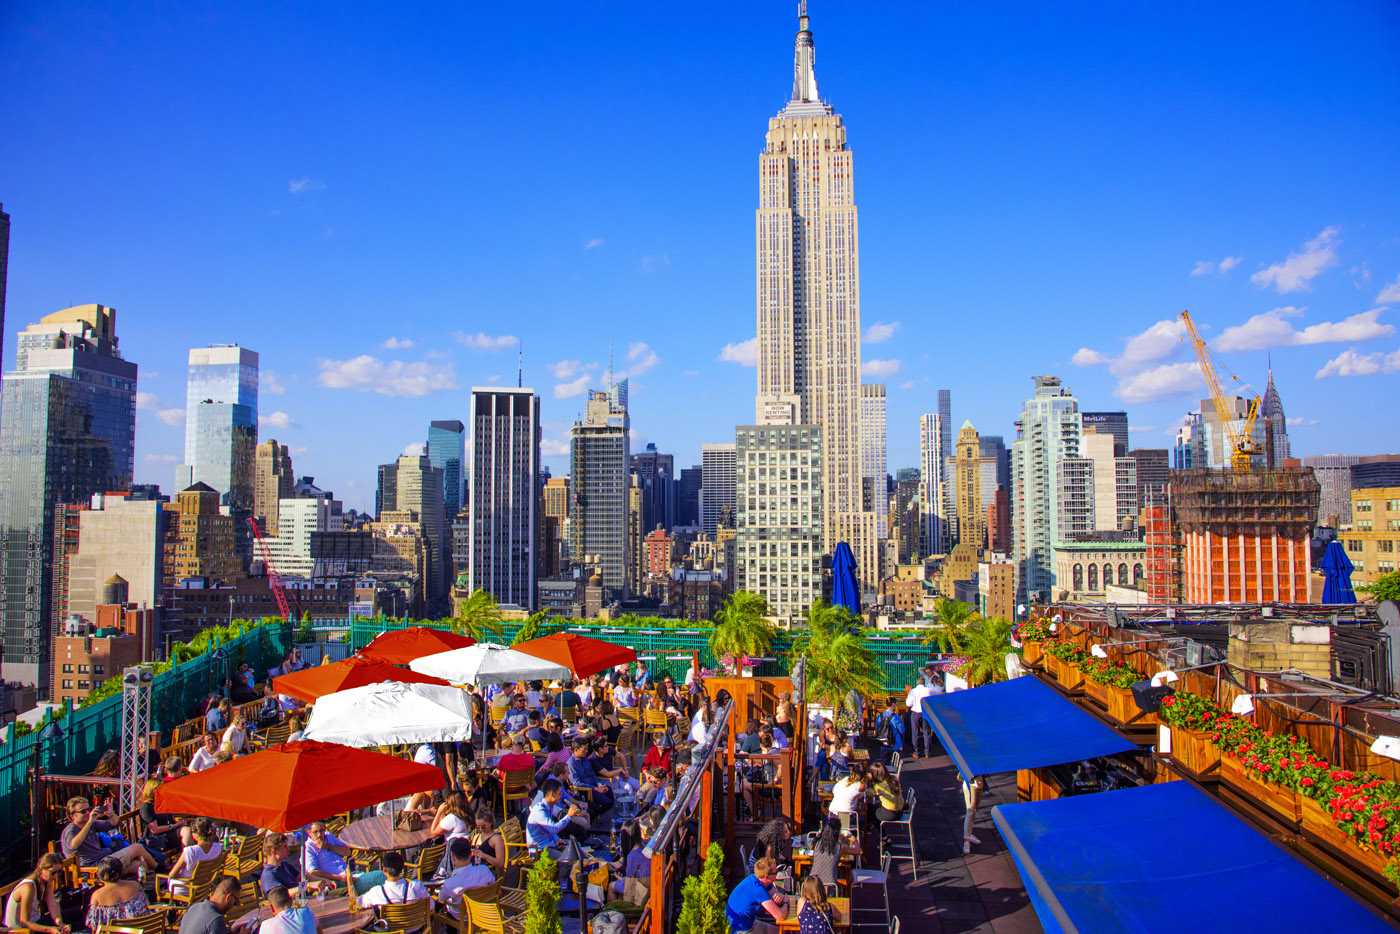 Venue - Rooftop Bar NYC - New York's largest indoor and outdoor bar